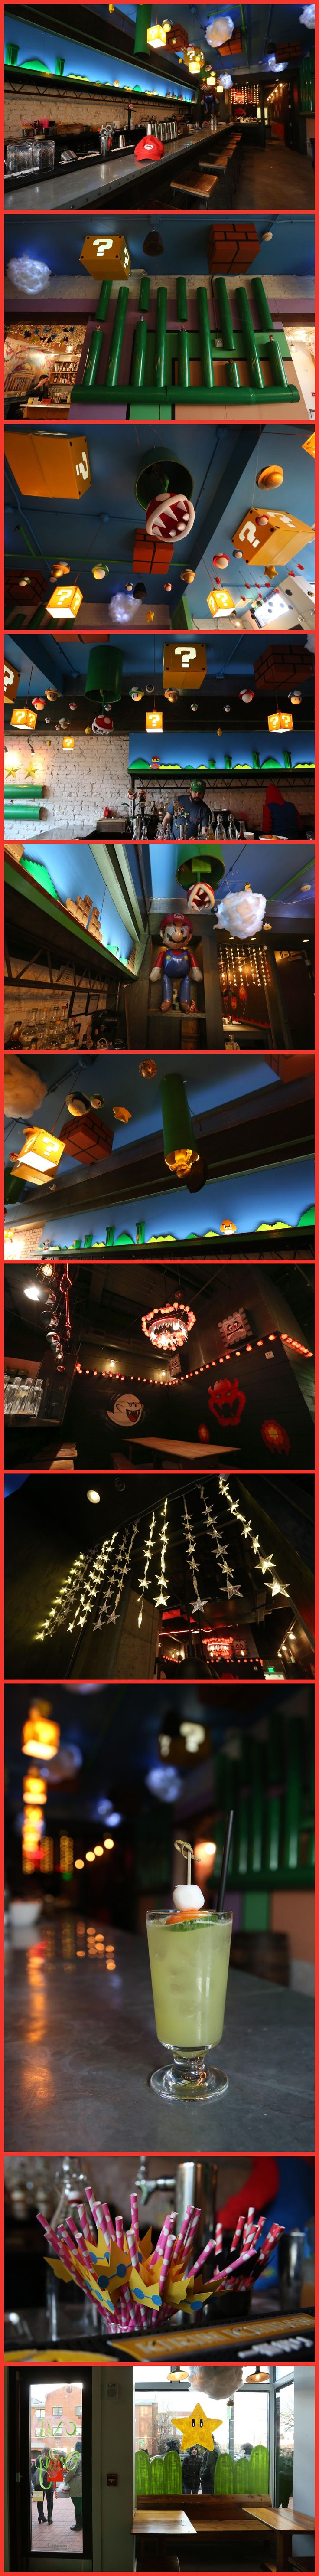 This Is Fuckin Dope 💓💓💓💓💓 Super Mario Bros Themed Pop Up Bar In  Washington DC. Classic Nintendo NES Video Game Decor And Drinks.